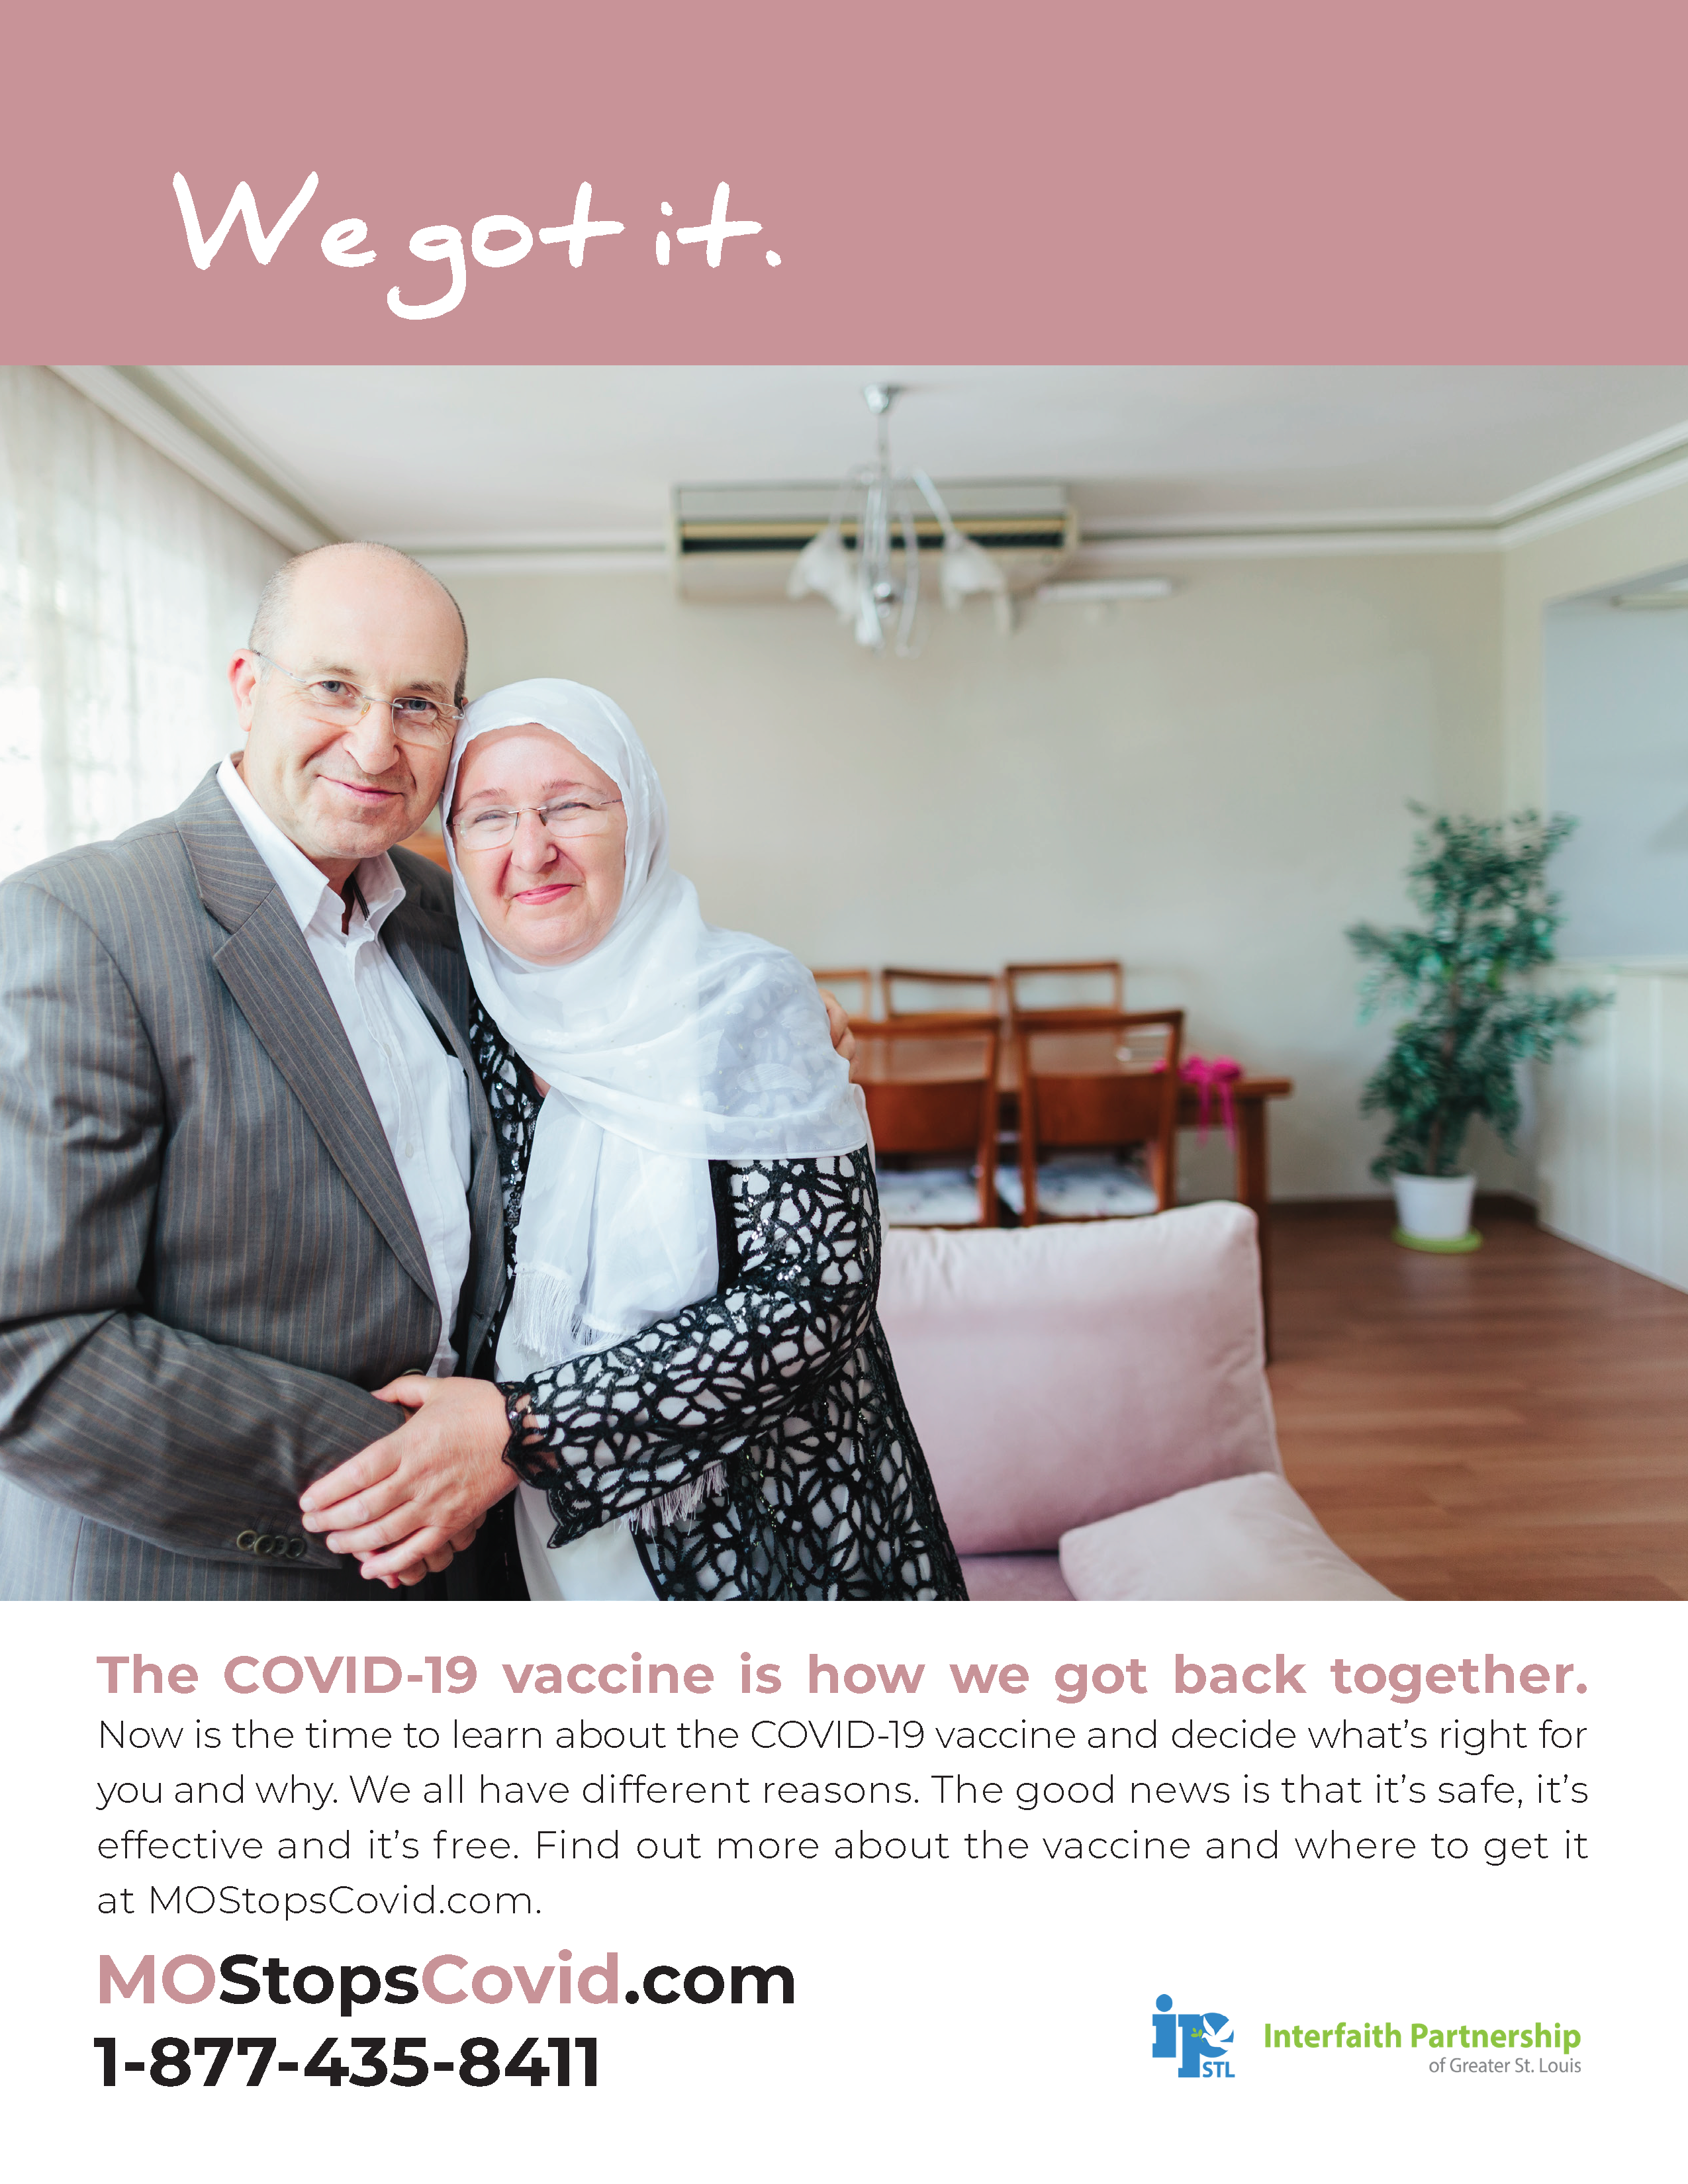 """Photograph of a couple holding hands and smiling directly at the camera in their living room. The woman is wearing a white headscarf. Above, the text reads """"We got it"""" over a pale pink border. Below, the text reads, """"The COVID-19 vaccine is how we got back together. Now is the time to learn about the COVID-19 vaccine and decide what's right for you and why. We all have different reasons. The good news is that it's safe, it's effective and it's free. FInd out more about the vaccine and where to get it at MOStopsCovid.com or by calling 1-877-435-8411. Courtesy of Interfaith Partnership of Greater St. Louis"""